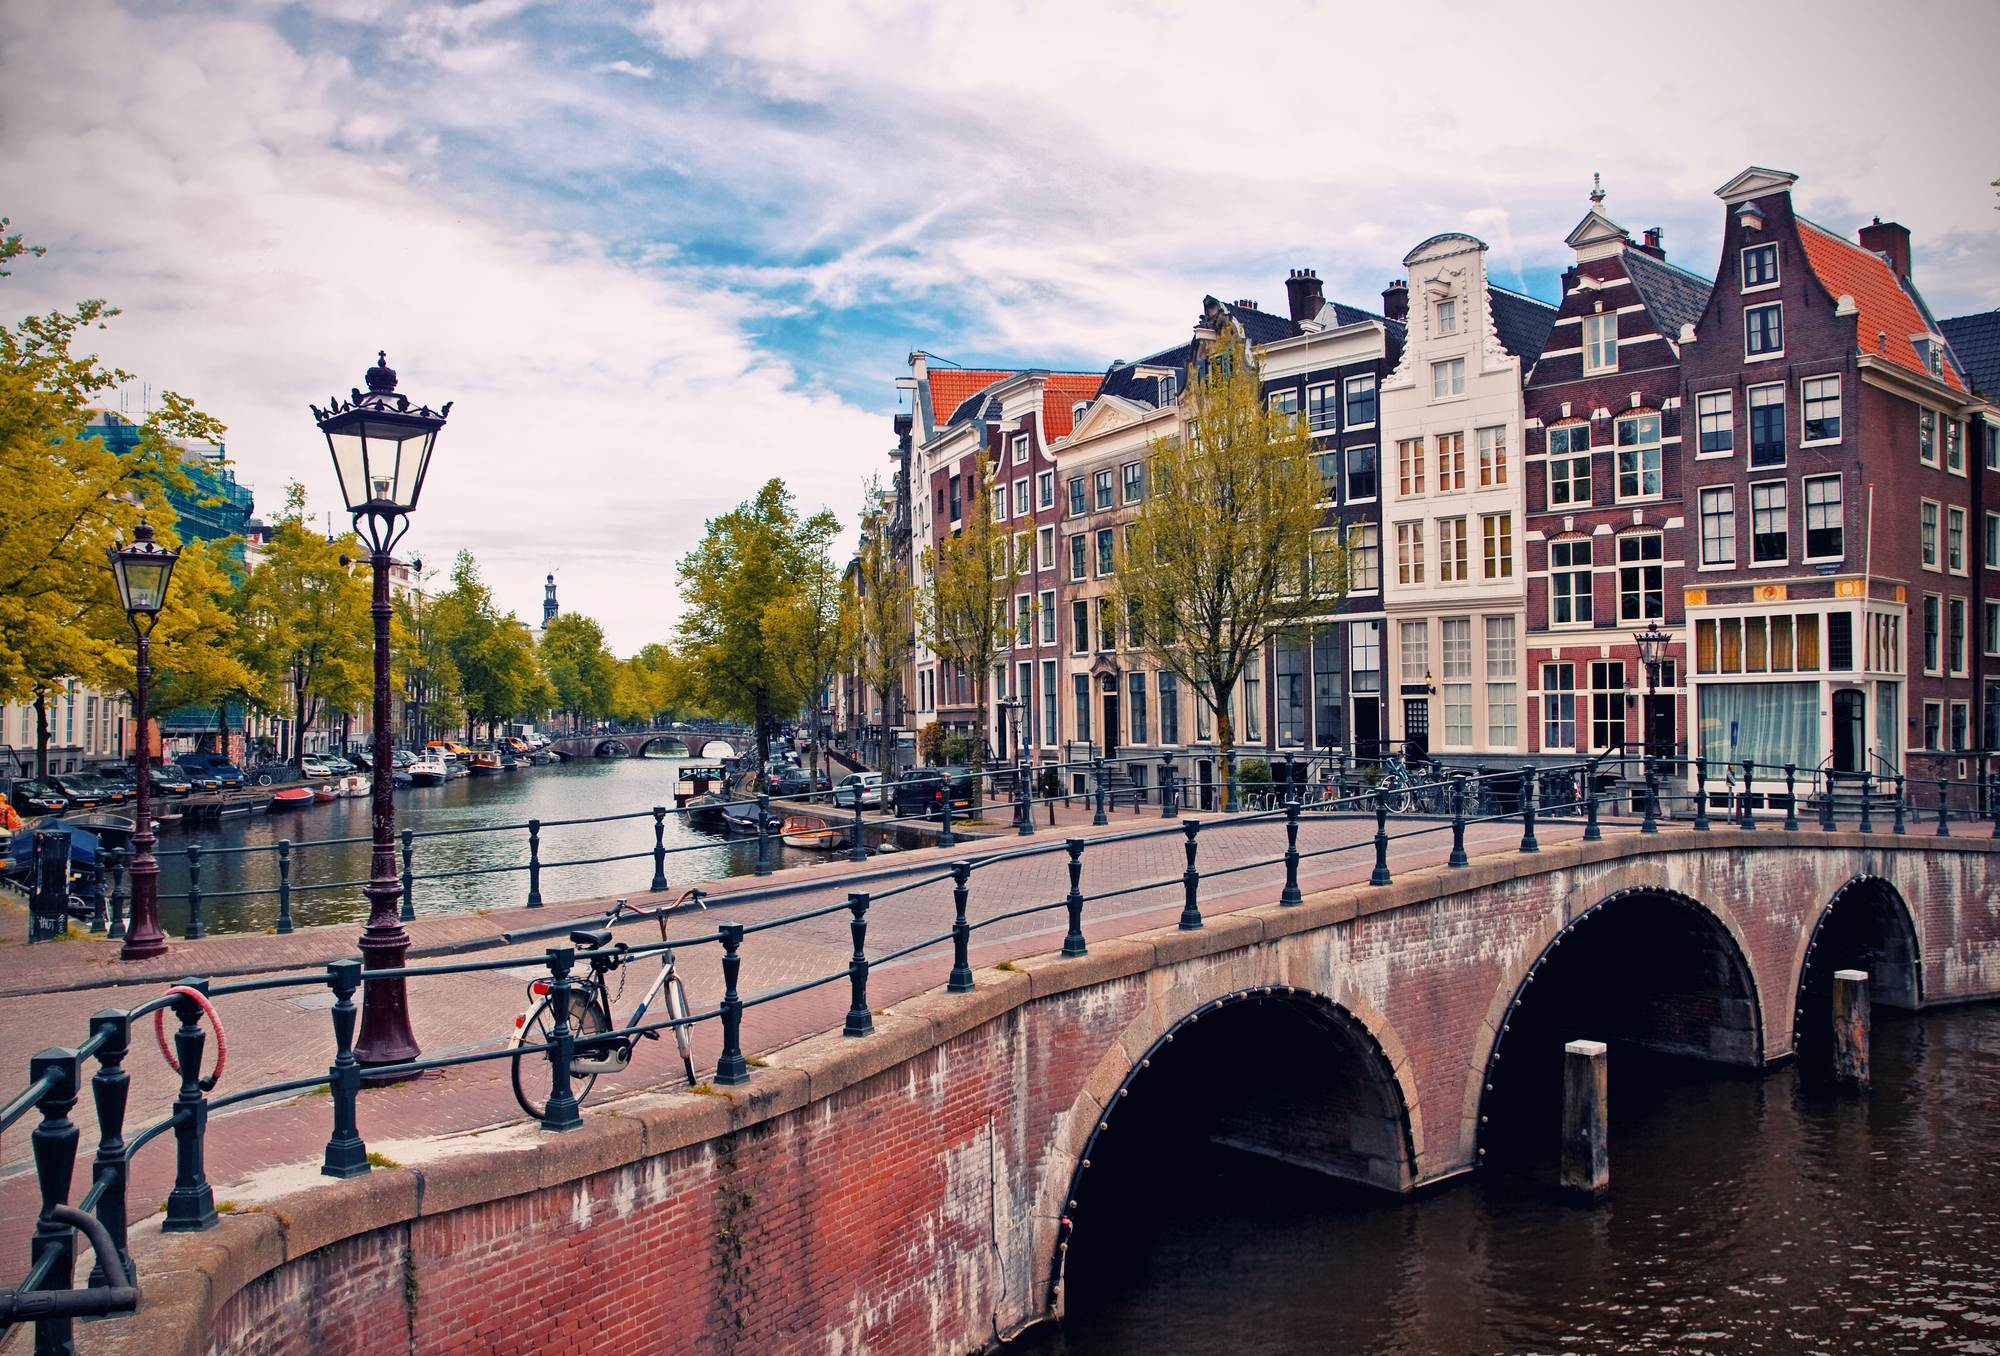 A-canal-in-Amsterdam-one-of-the-things-you-would-miss-from-the-Netherlands